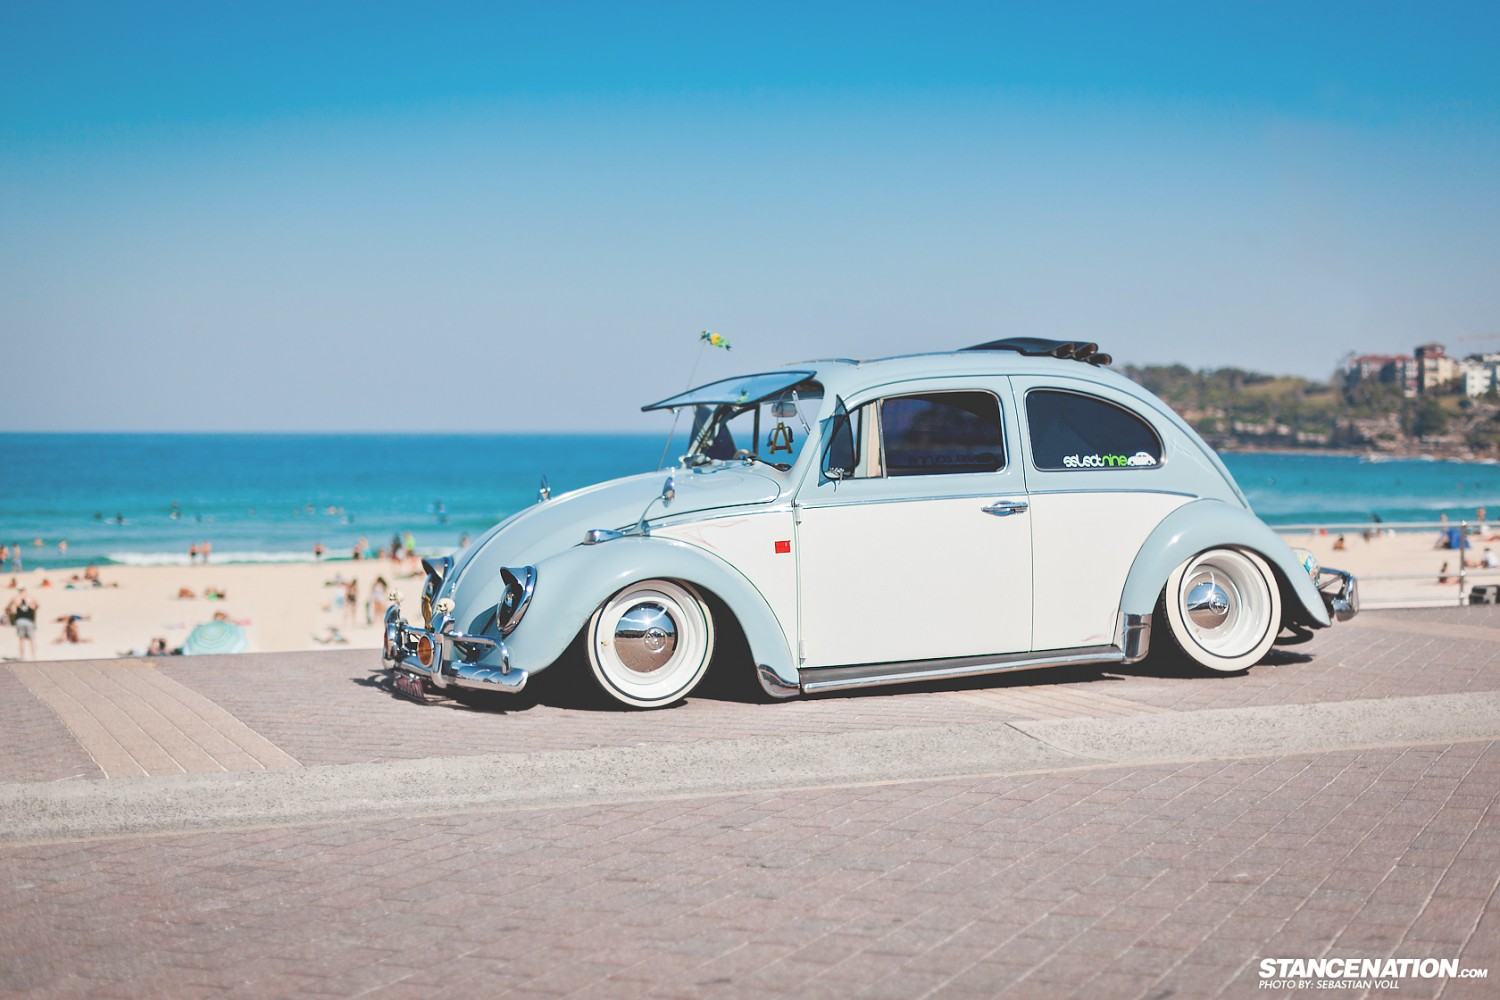 Buggin' // Bhathiya's Gorgeous VW Beetle. | StanceNation™ // Form > Function